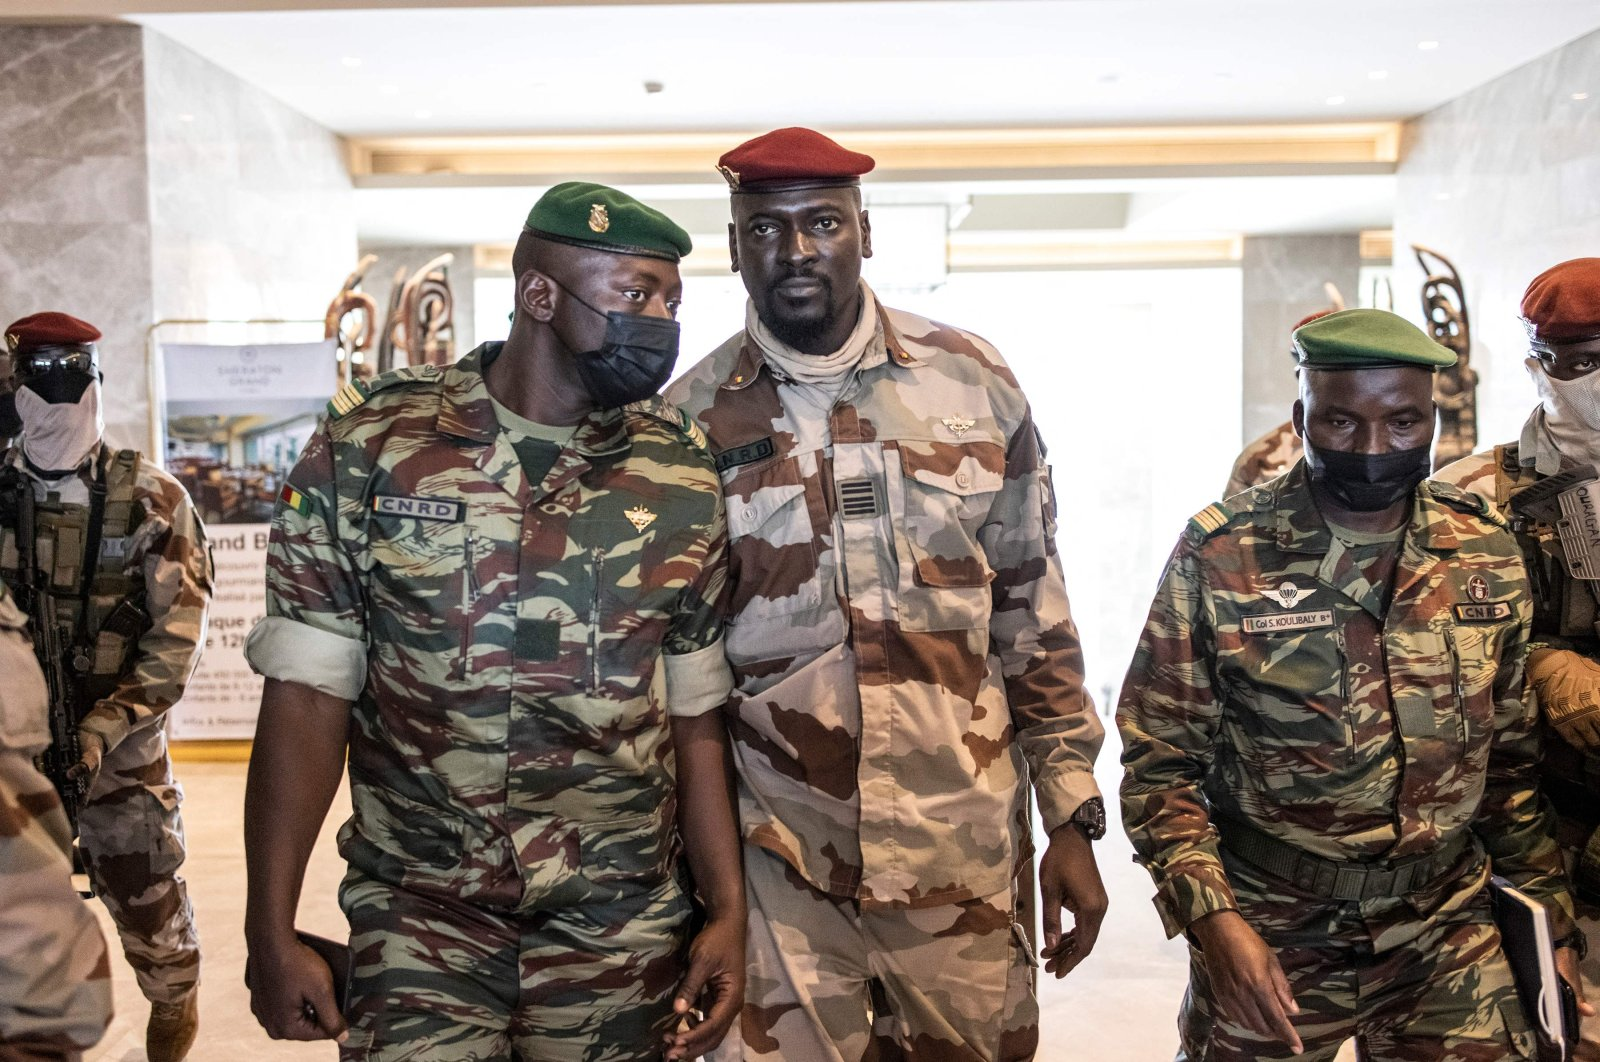 President of the National Committee for Rally and Development (CNRD) Col. Mamady Doumbouya (C) leaves a meeting with high-level representatives of the Economic Community of West African States (ECOWAS) in Conakry, Guinea, Sept. 17, 2021,  (AFP Photo)